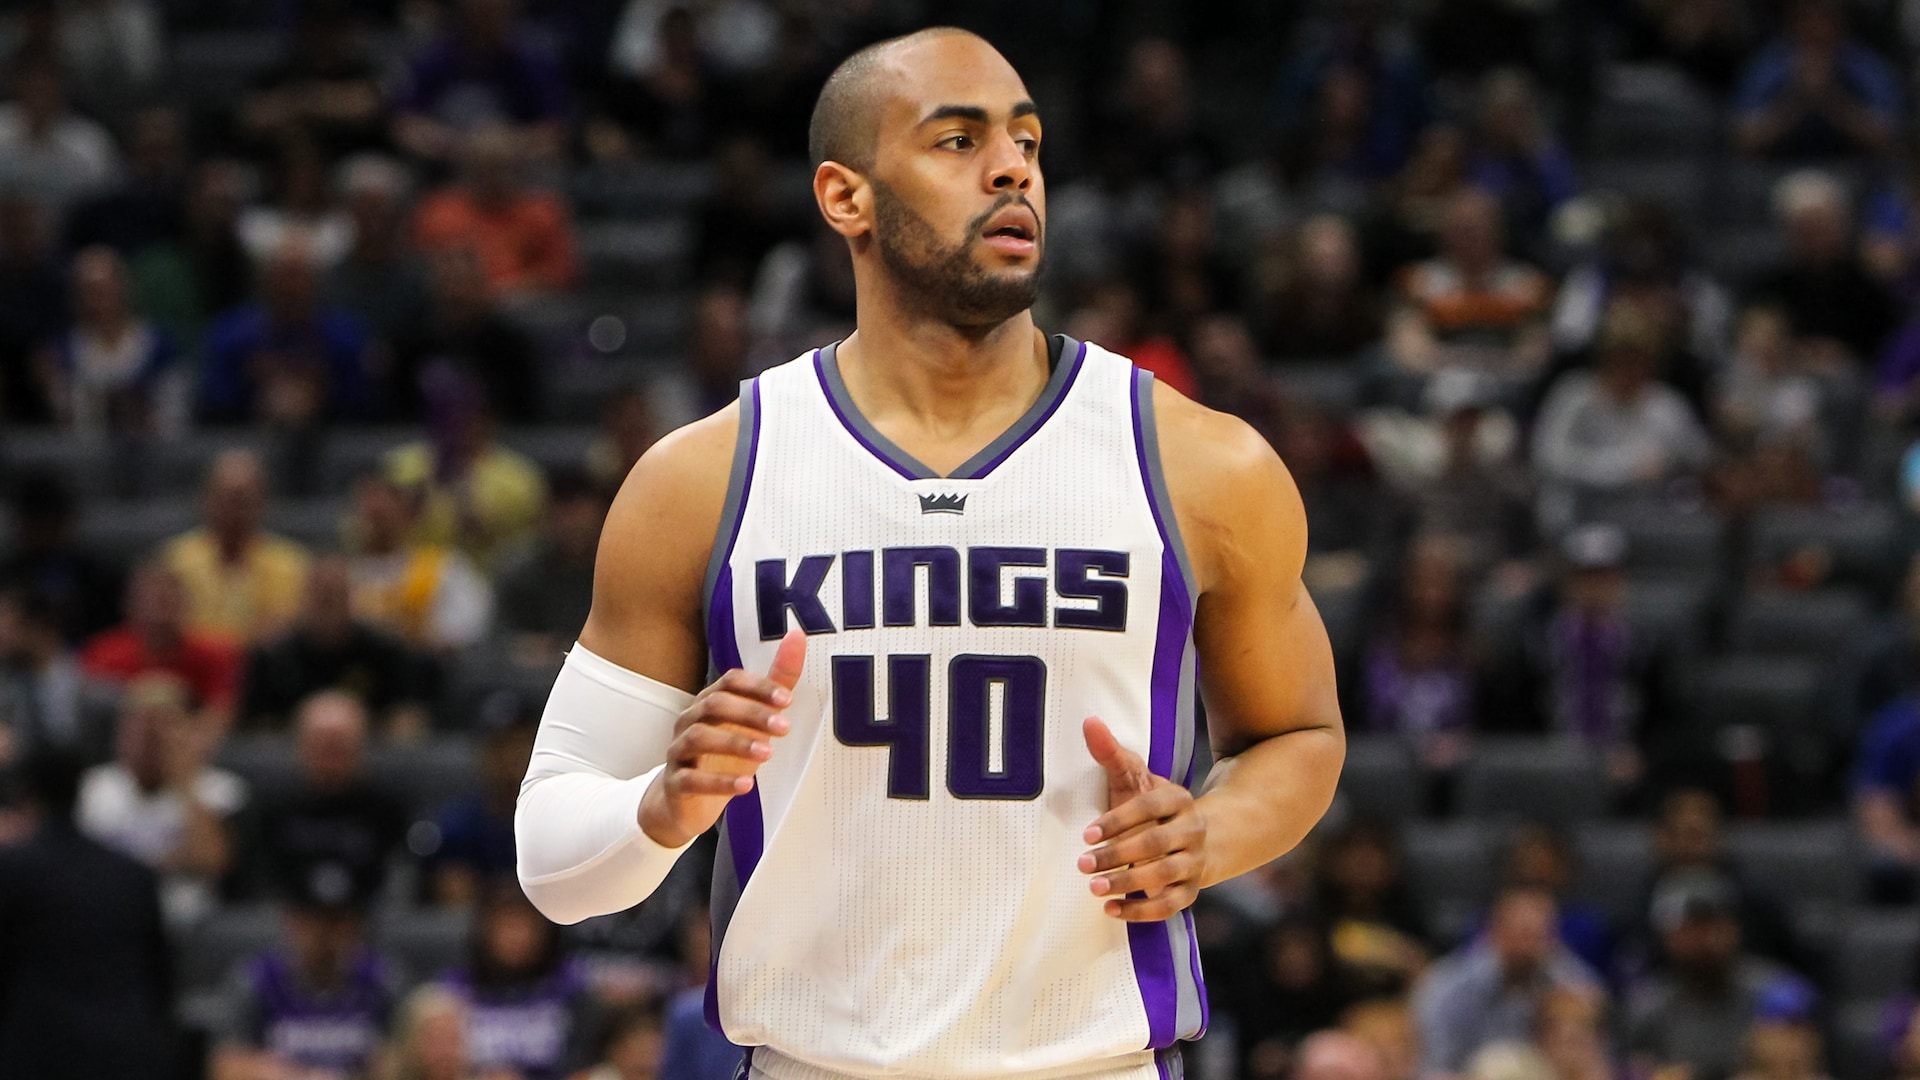 Report: Aaron Afflalo headlines group bidding to buy Wolves